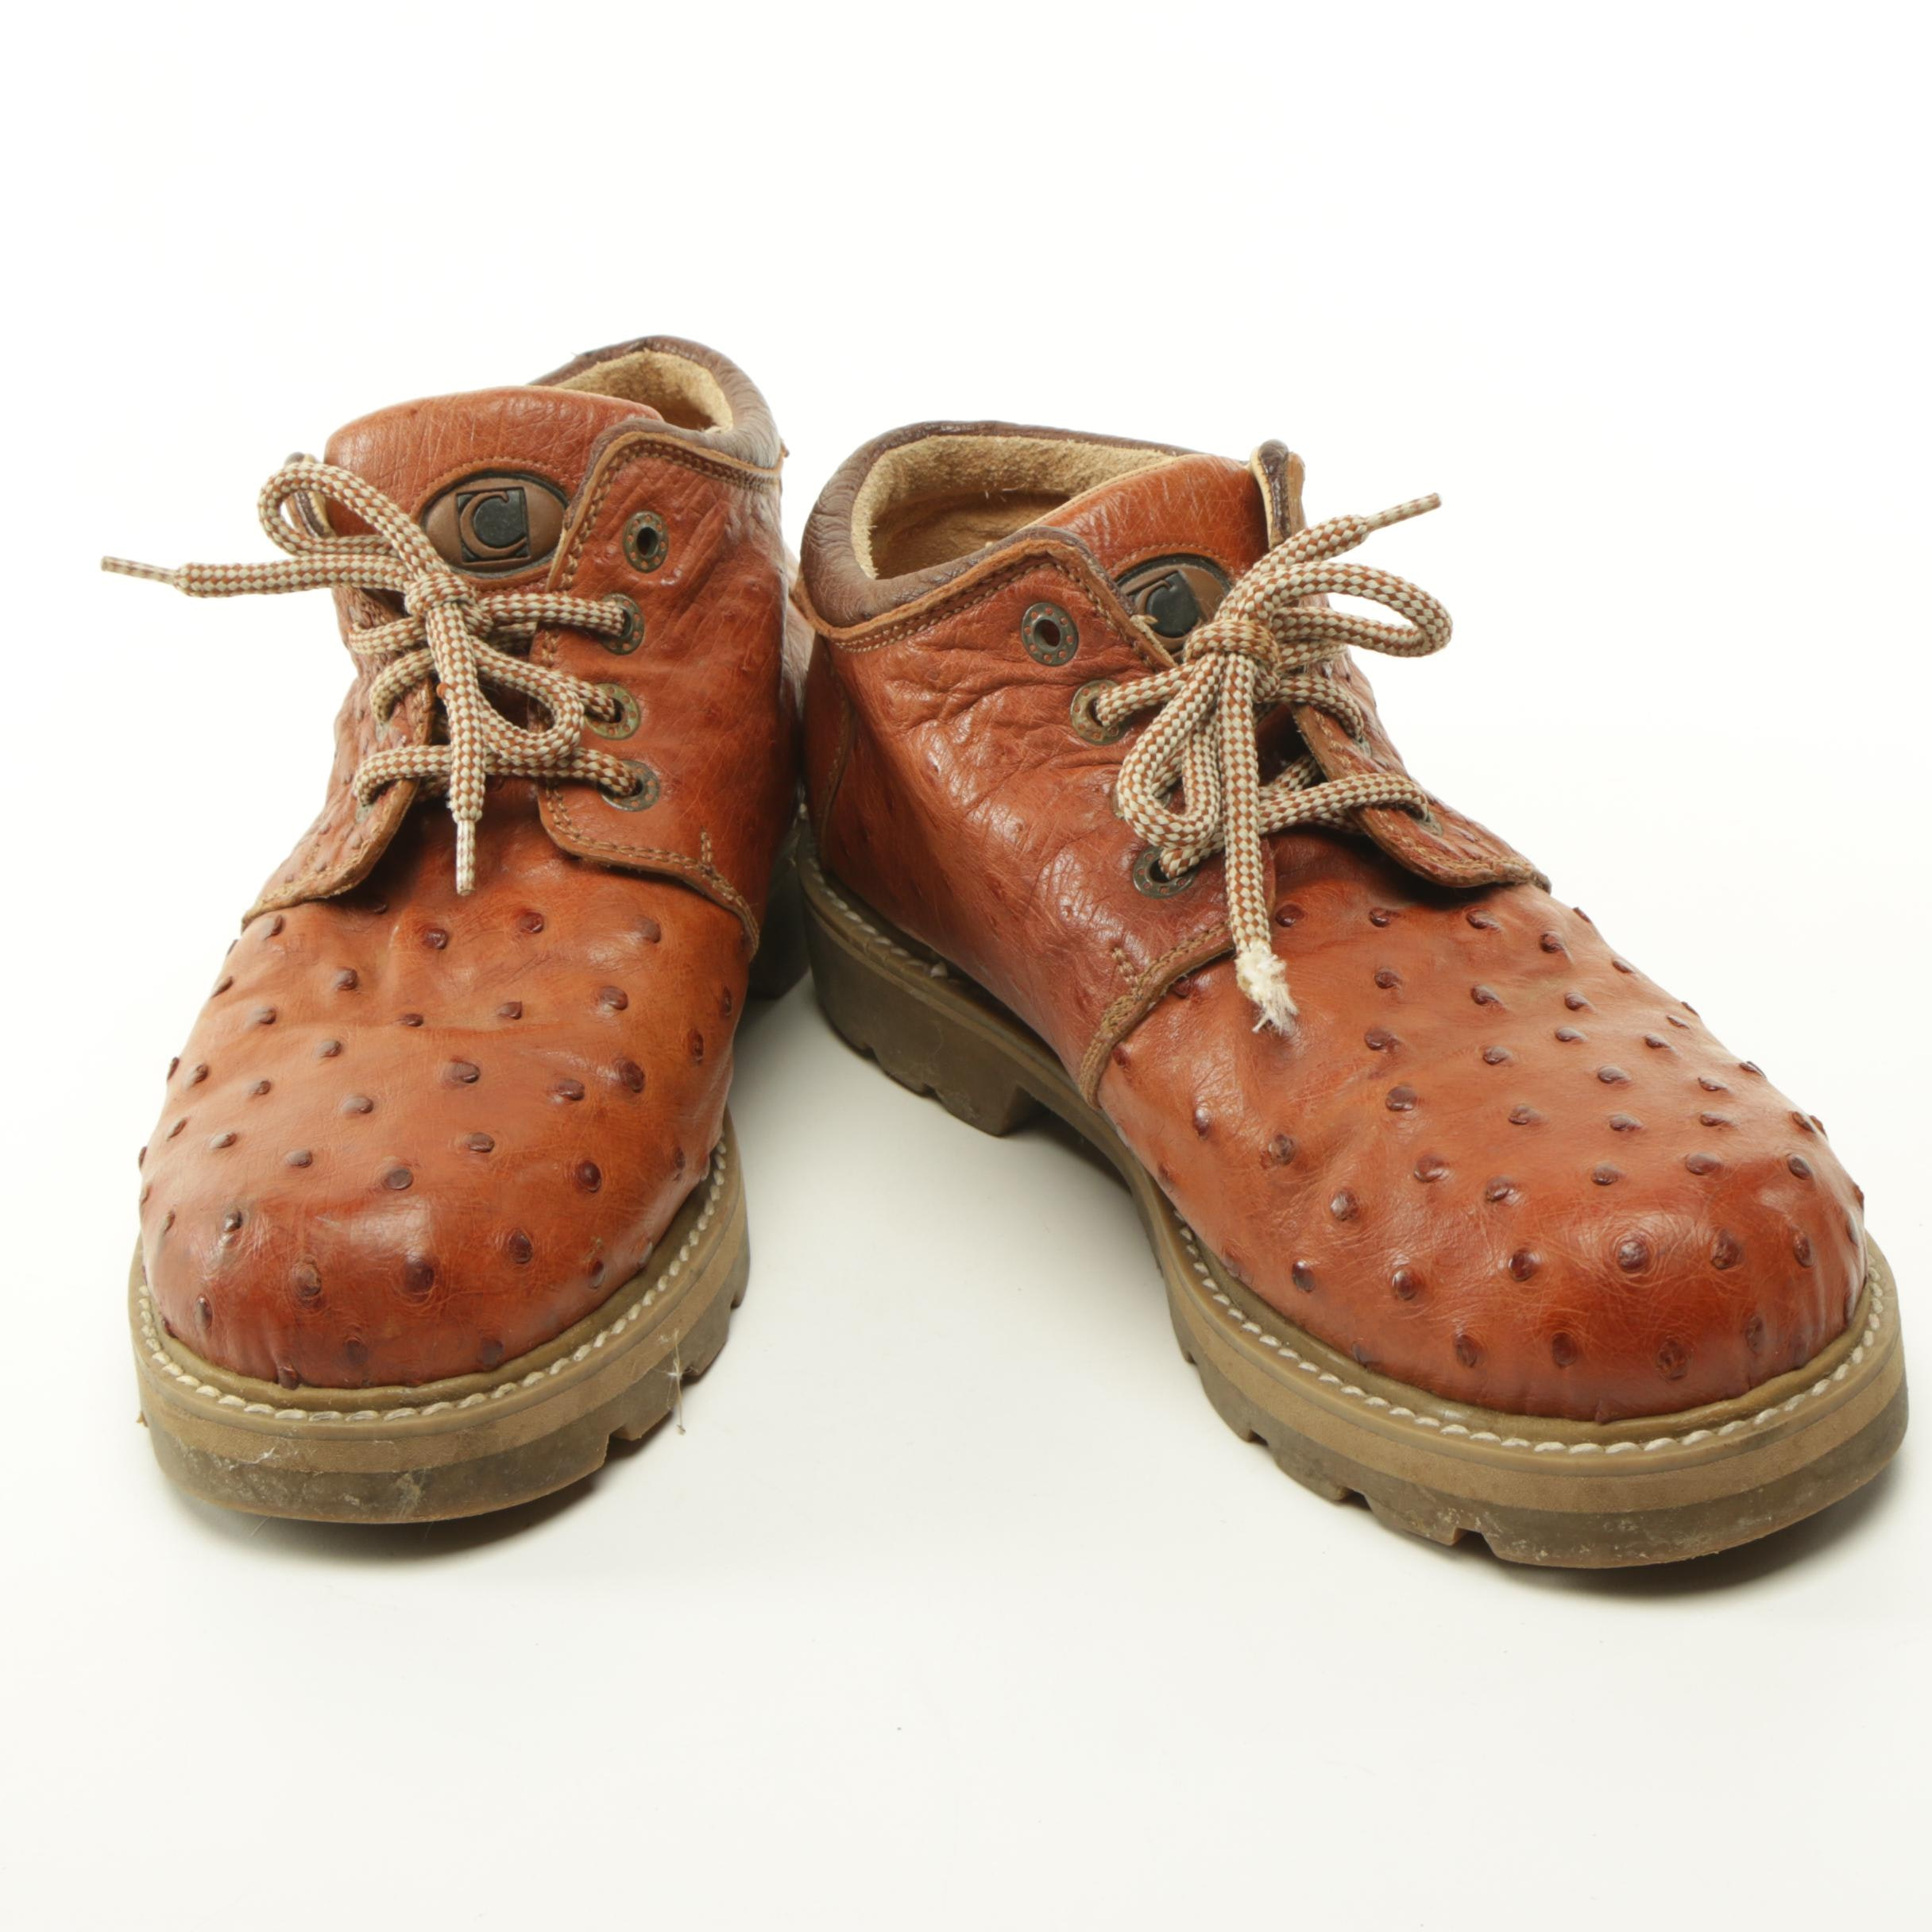 Men's Ostrich Leather Shoes by Calzados